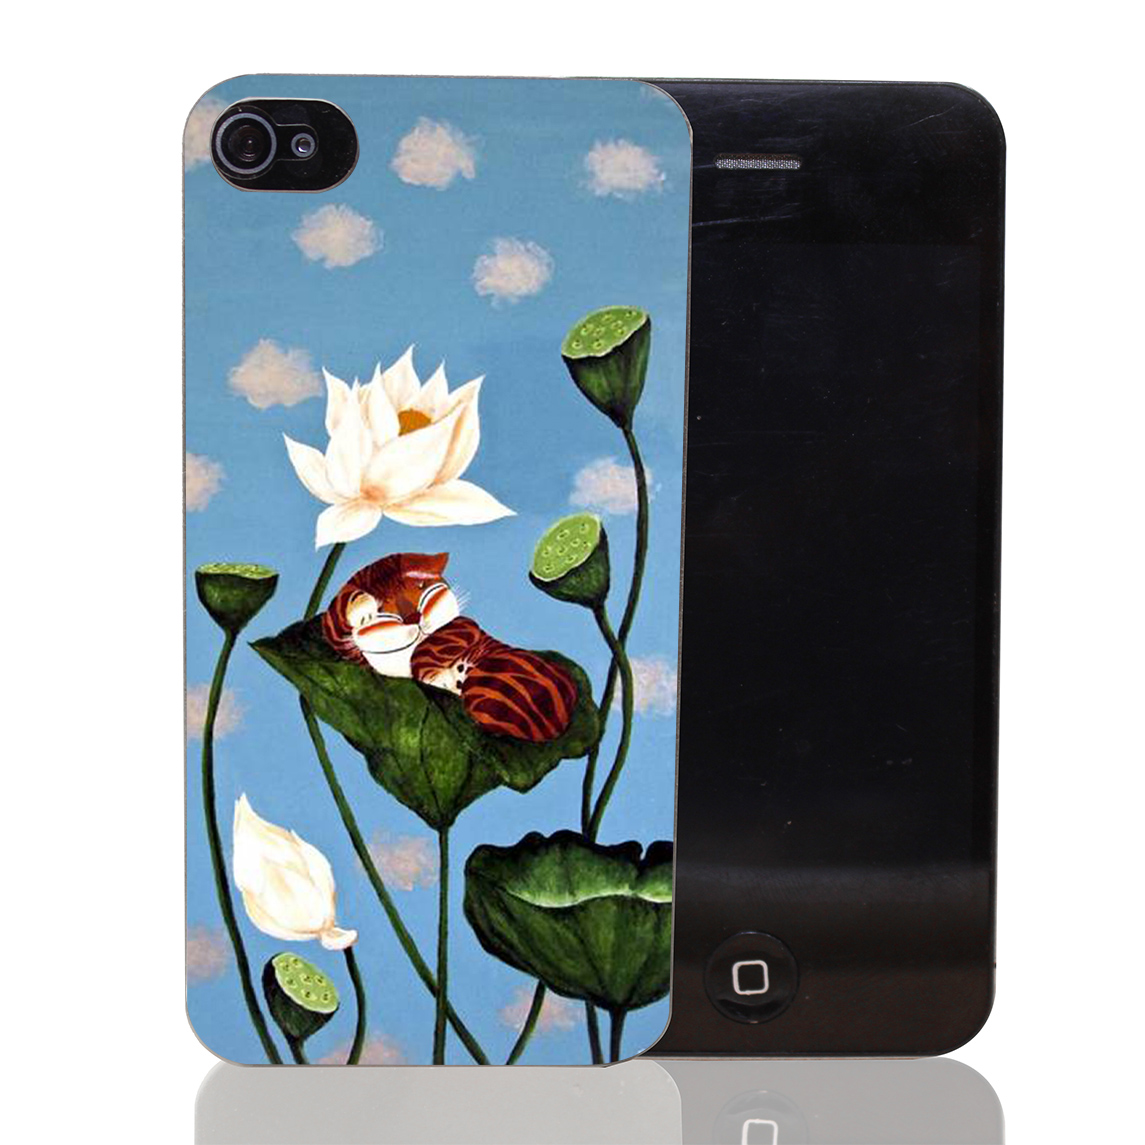 641CA Cat on the lotus leaf Hard Transparent Case Cover for iPhone 4 4s 5 5s 5c SE 6 6s Plus Thin Style(China (Mainland))